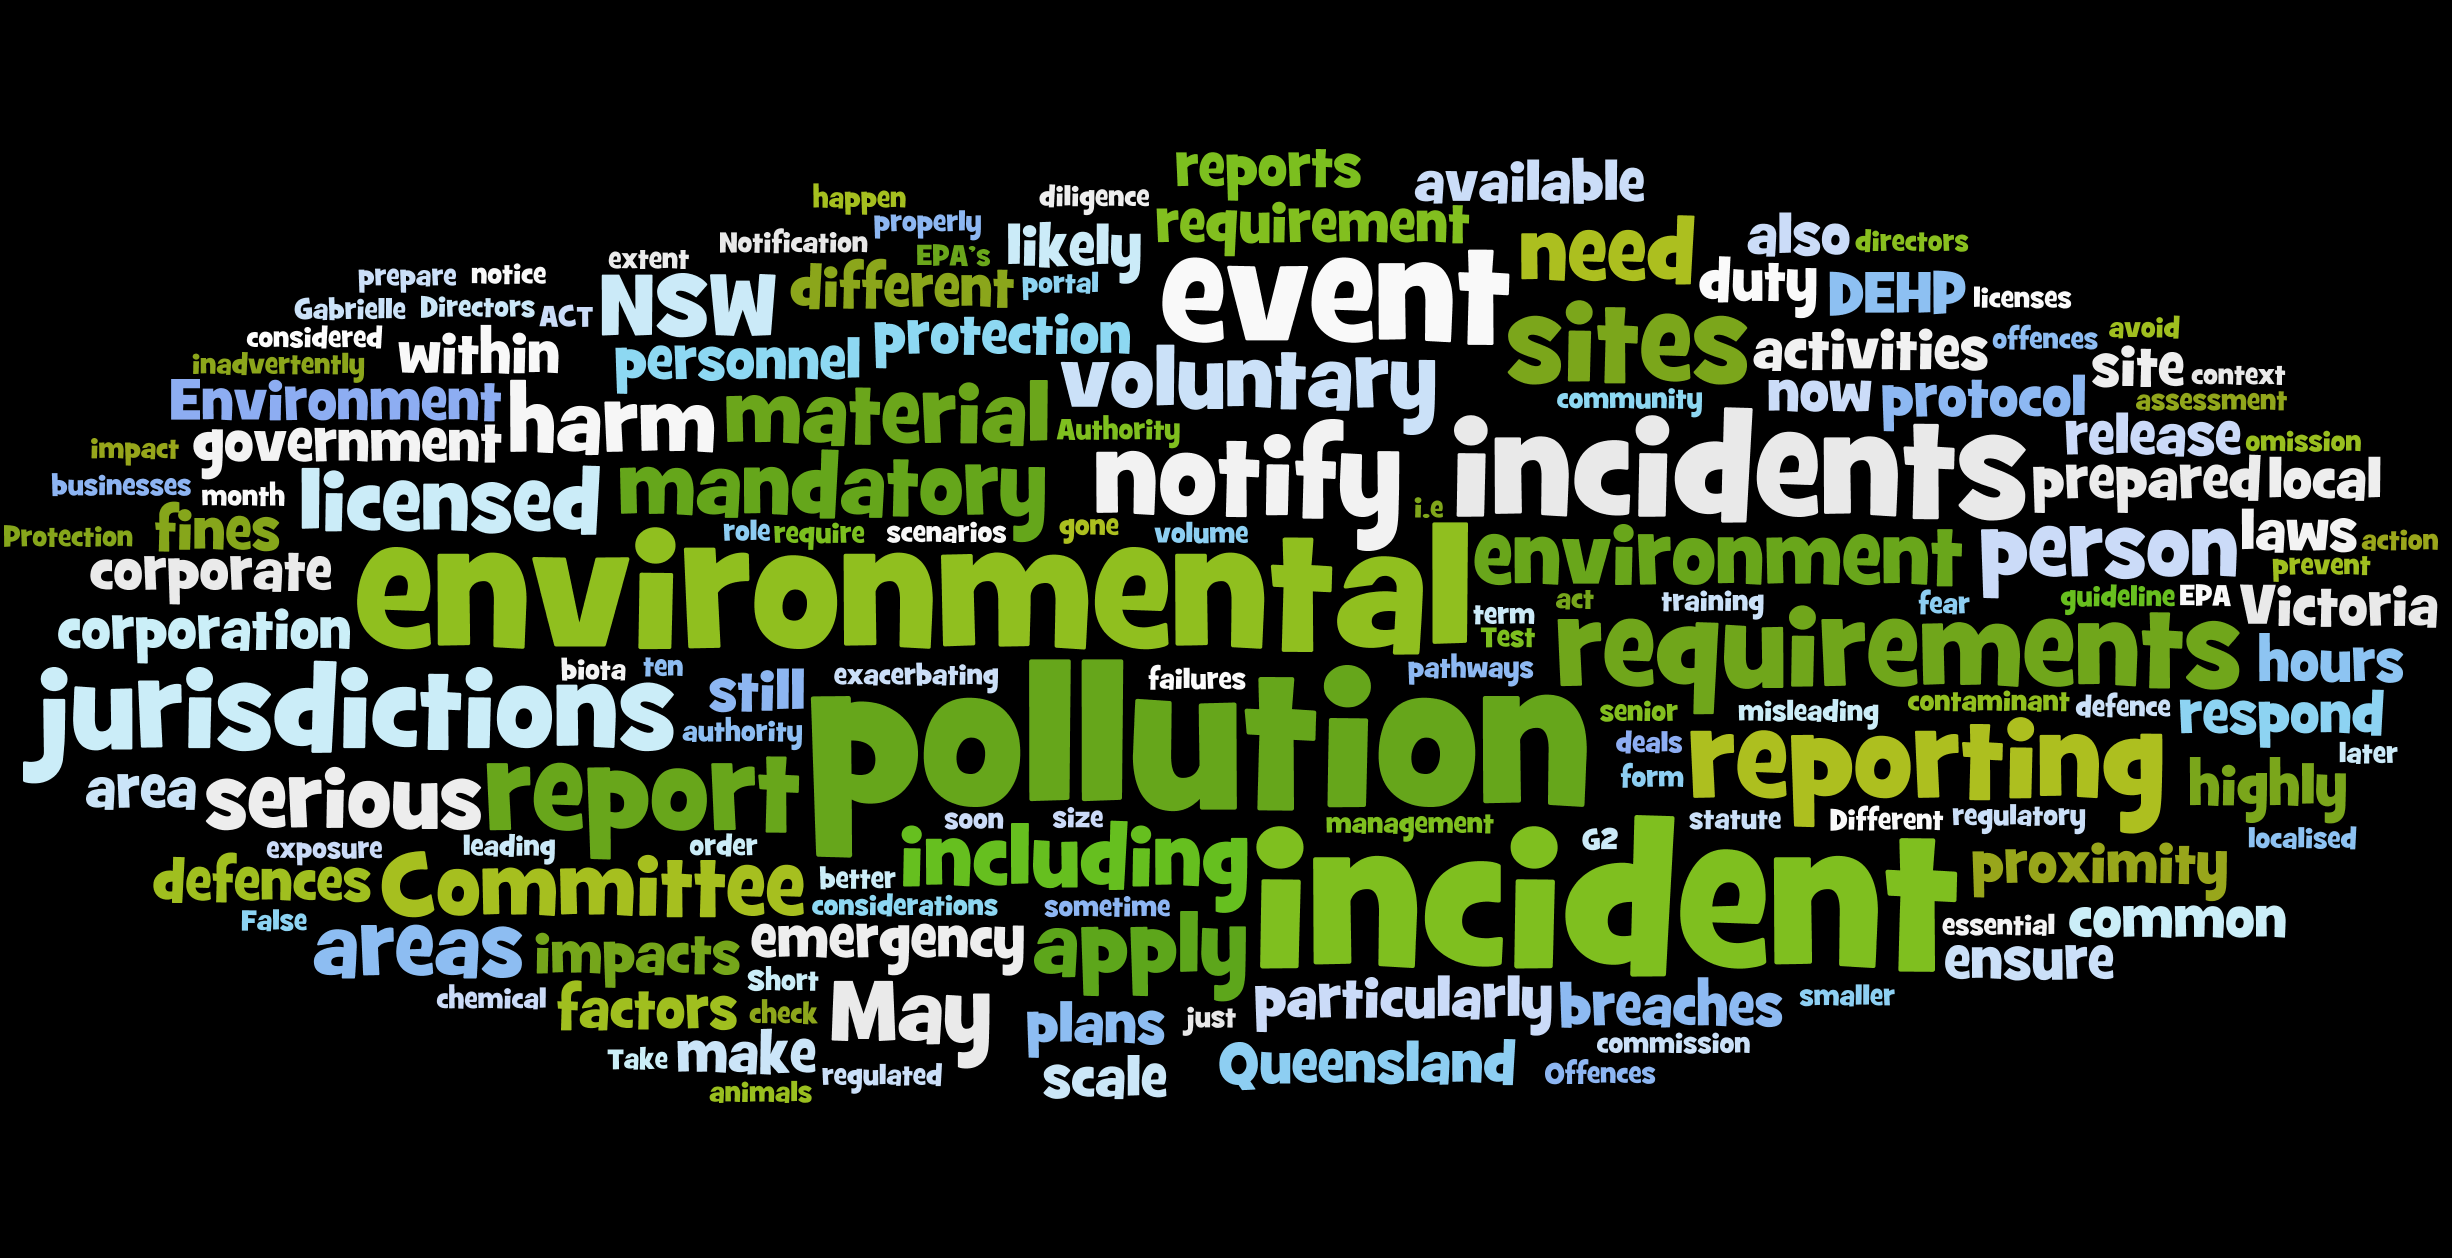 Guthrie Legal Environmental Incident Response.png